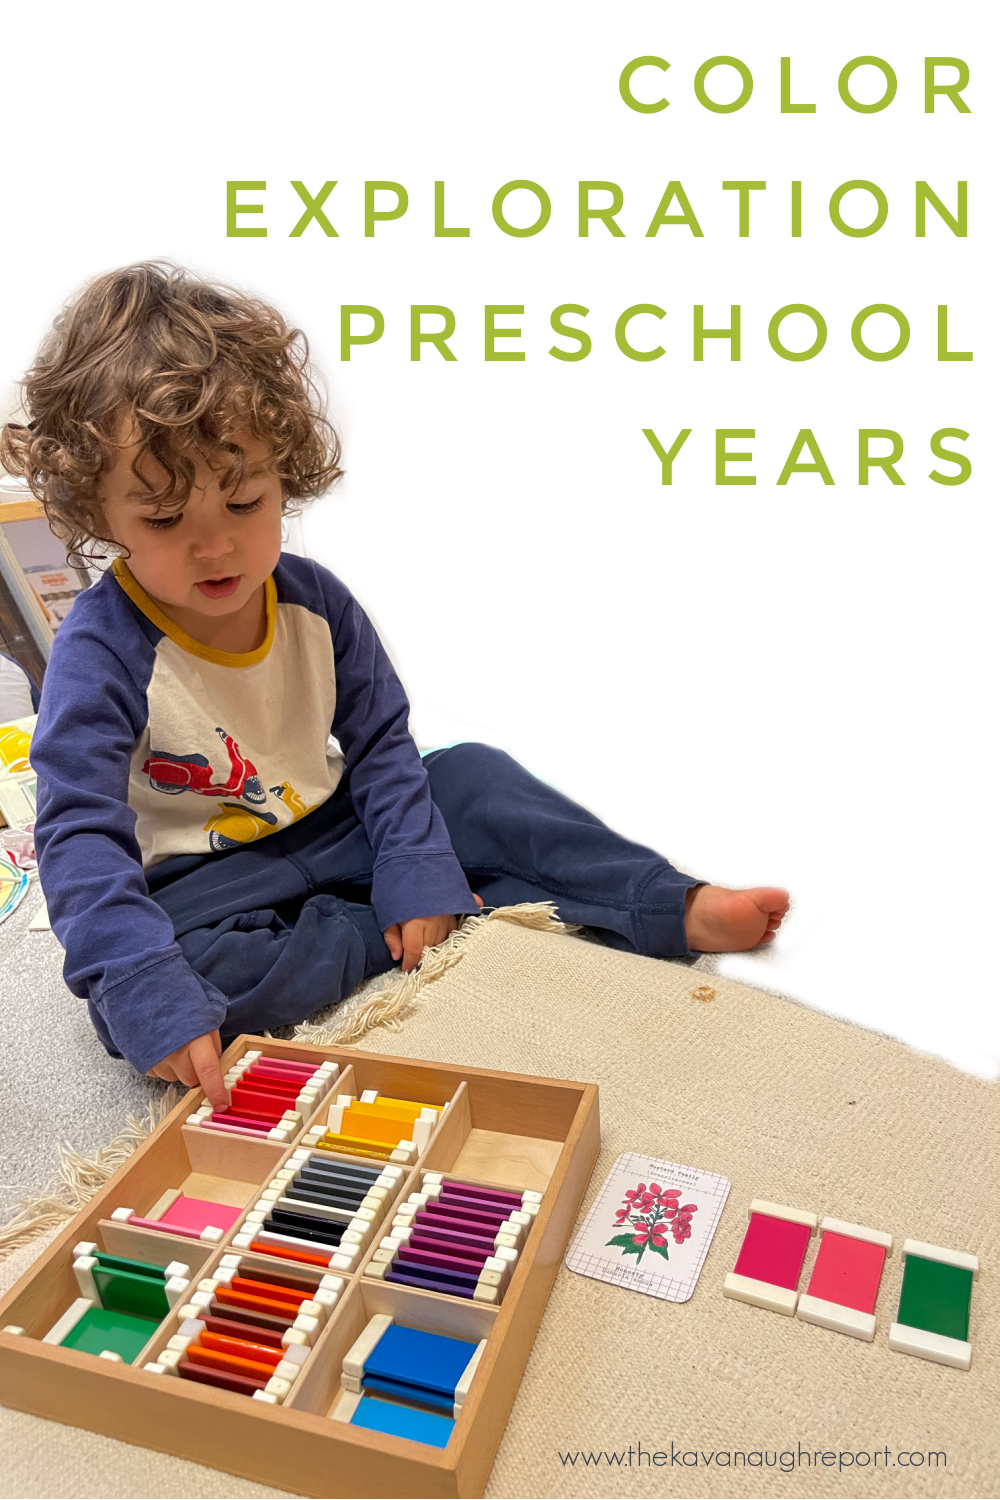 Montessori home. Here's a look at activity ideas for 4-year-olds that explore colors more deeply.